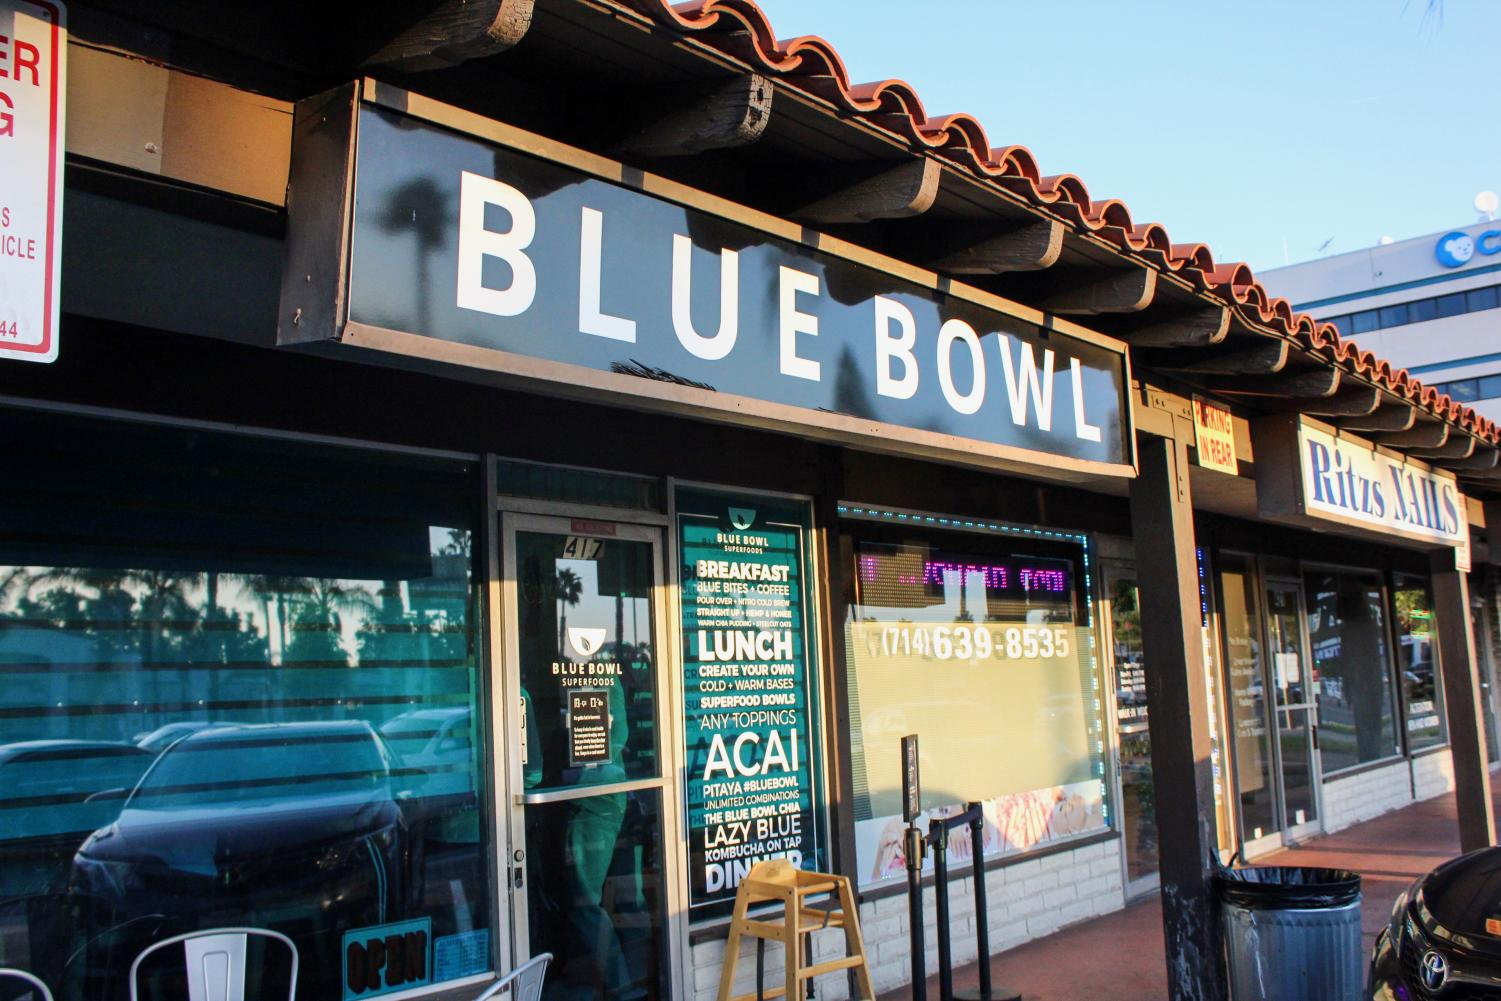 """BLUE HEAVEN: Serving up delicious açaí bowls, Blue Bowl is located across Orange County. Blue Bowl was voted as one of the top five trendy food places. """"Blue Bowl is similar to Banzai Bowls, but their add ons are way healthier and have much more variety to choose from,"""" senior Ashley Cruz said. """"I like to get the bowl with an açaí base, granola, strawberries, banana, blueberries, chia seeds, almond butter, organic agave, and raw coconut flakes."""""""